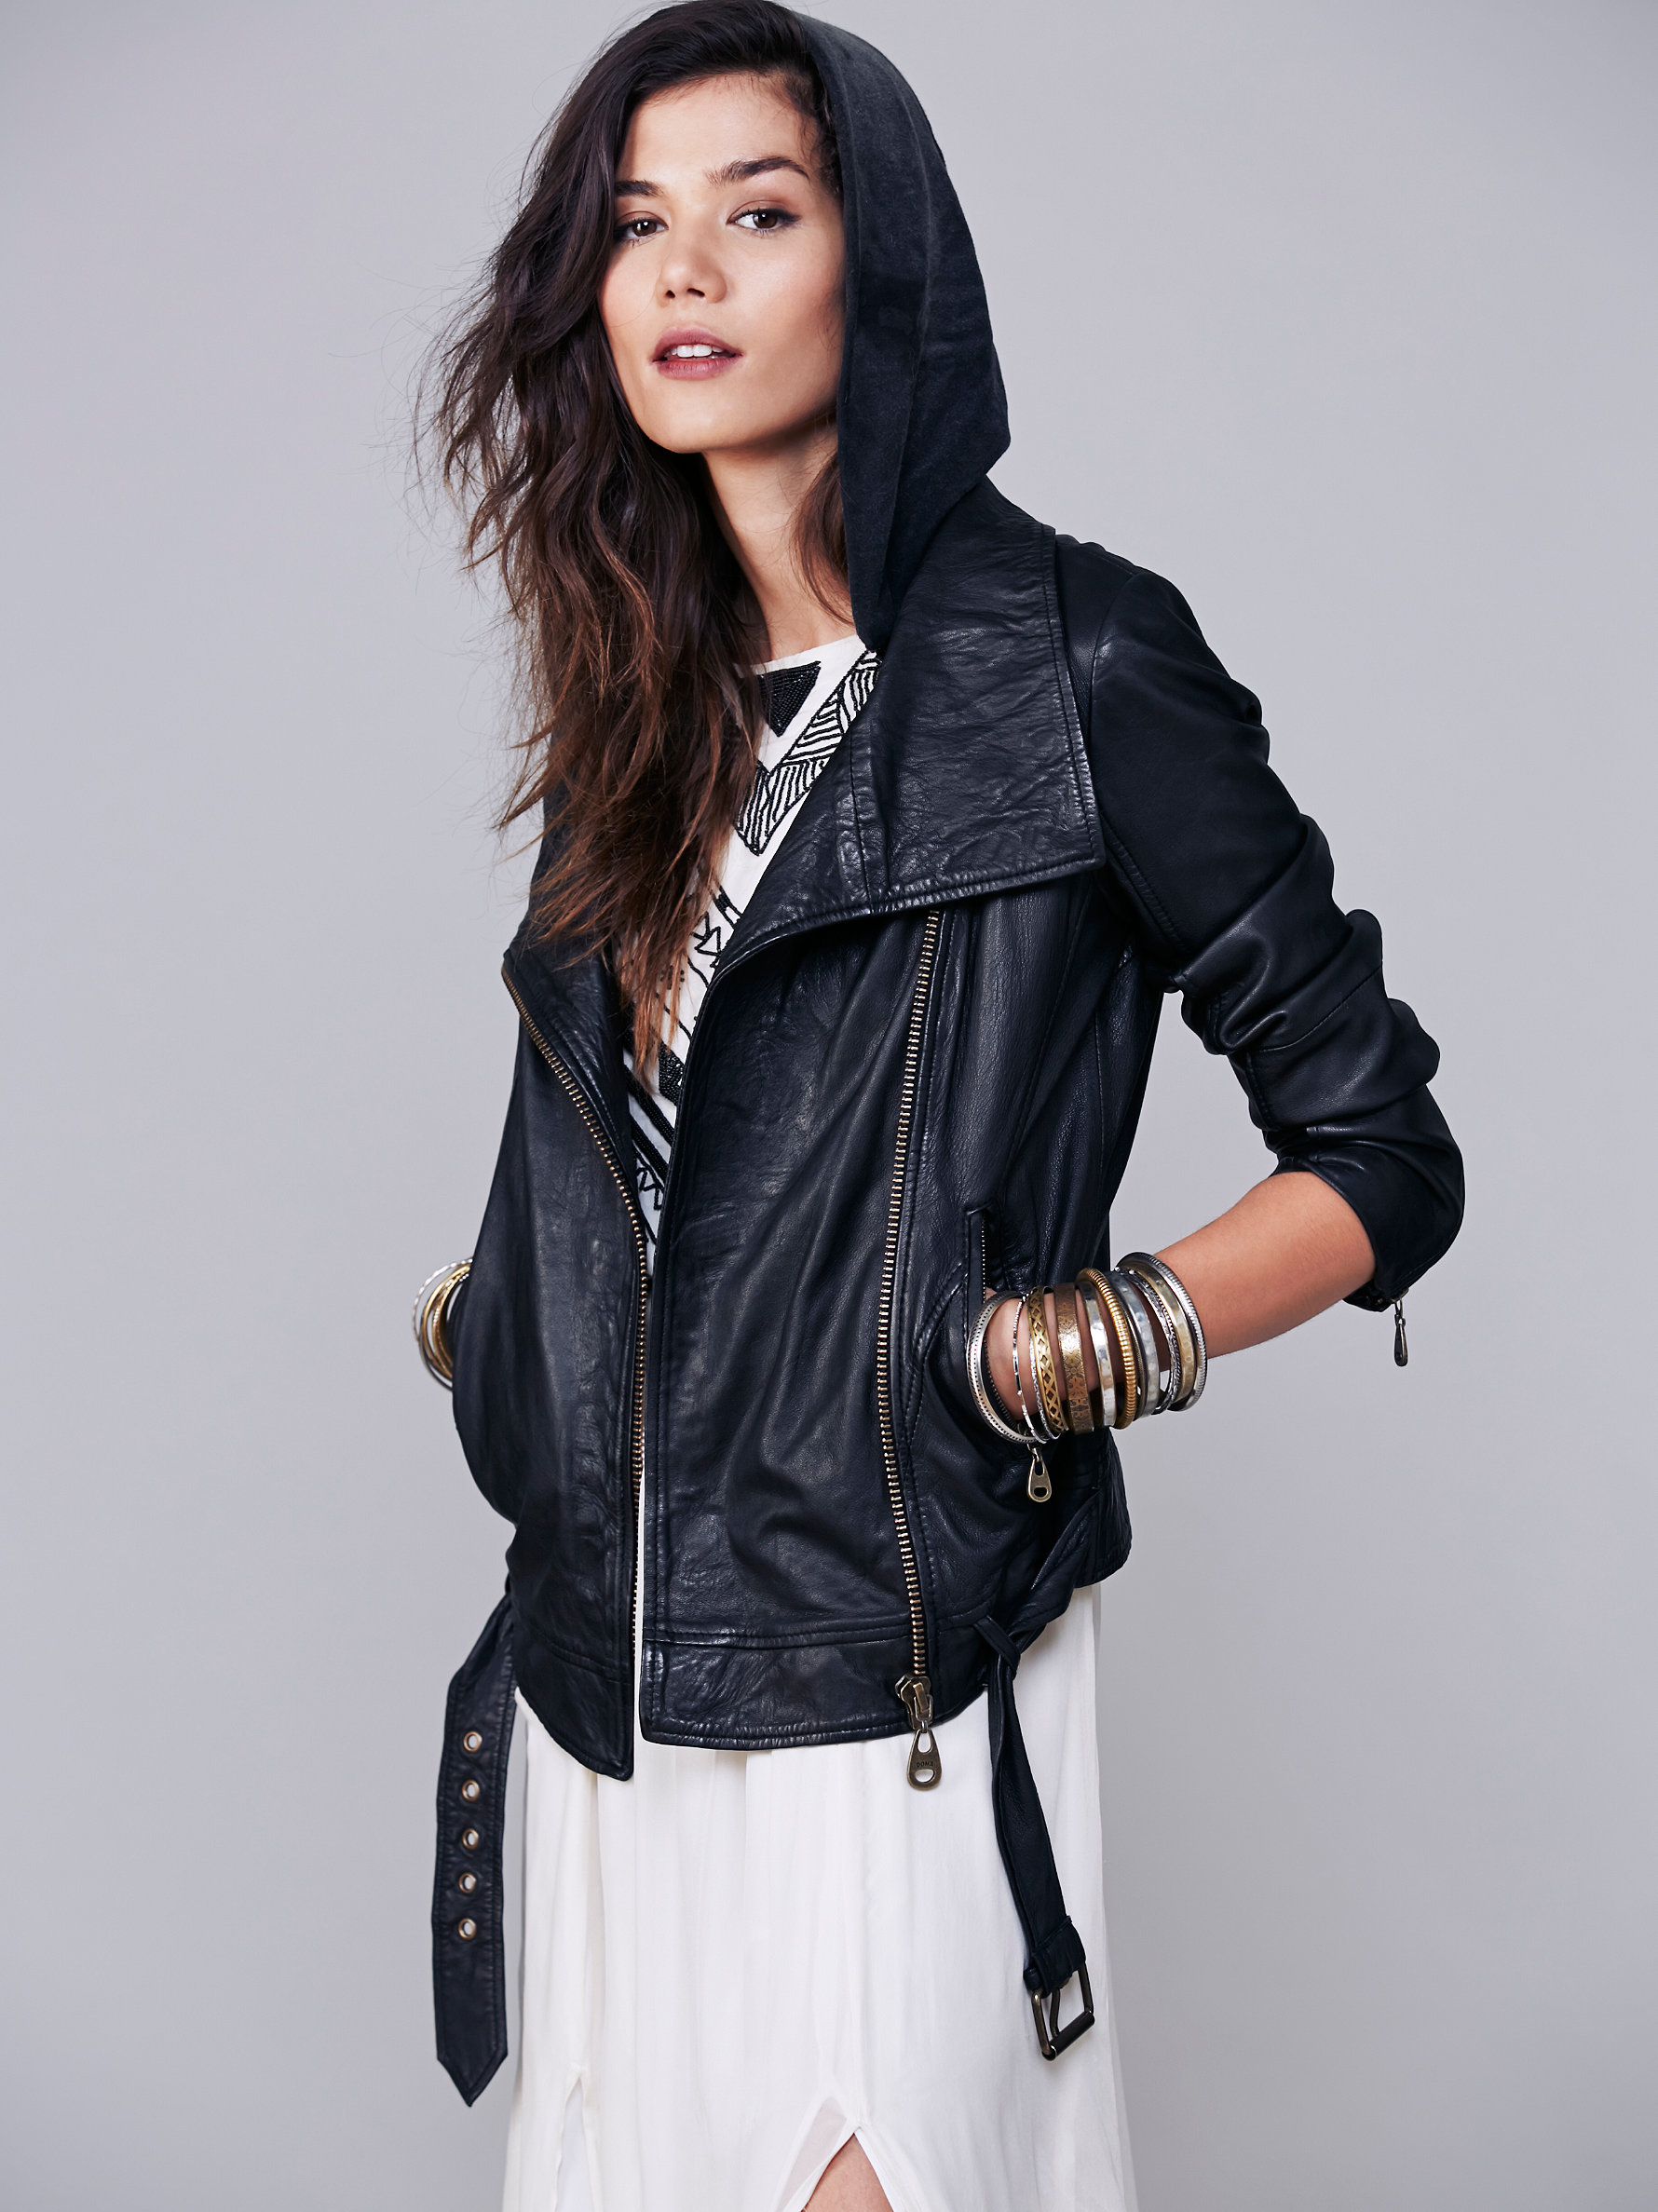 Free People Hooded Biker Leather Jacket | How to Wear Dresses in Fall